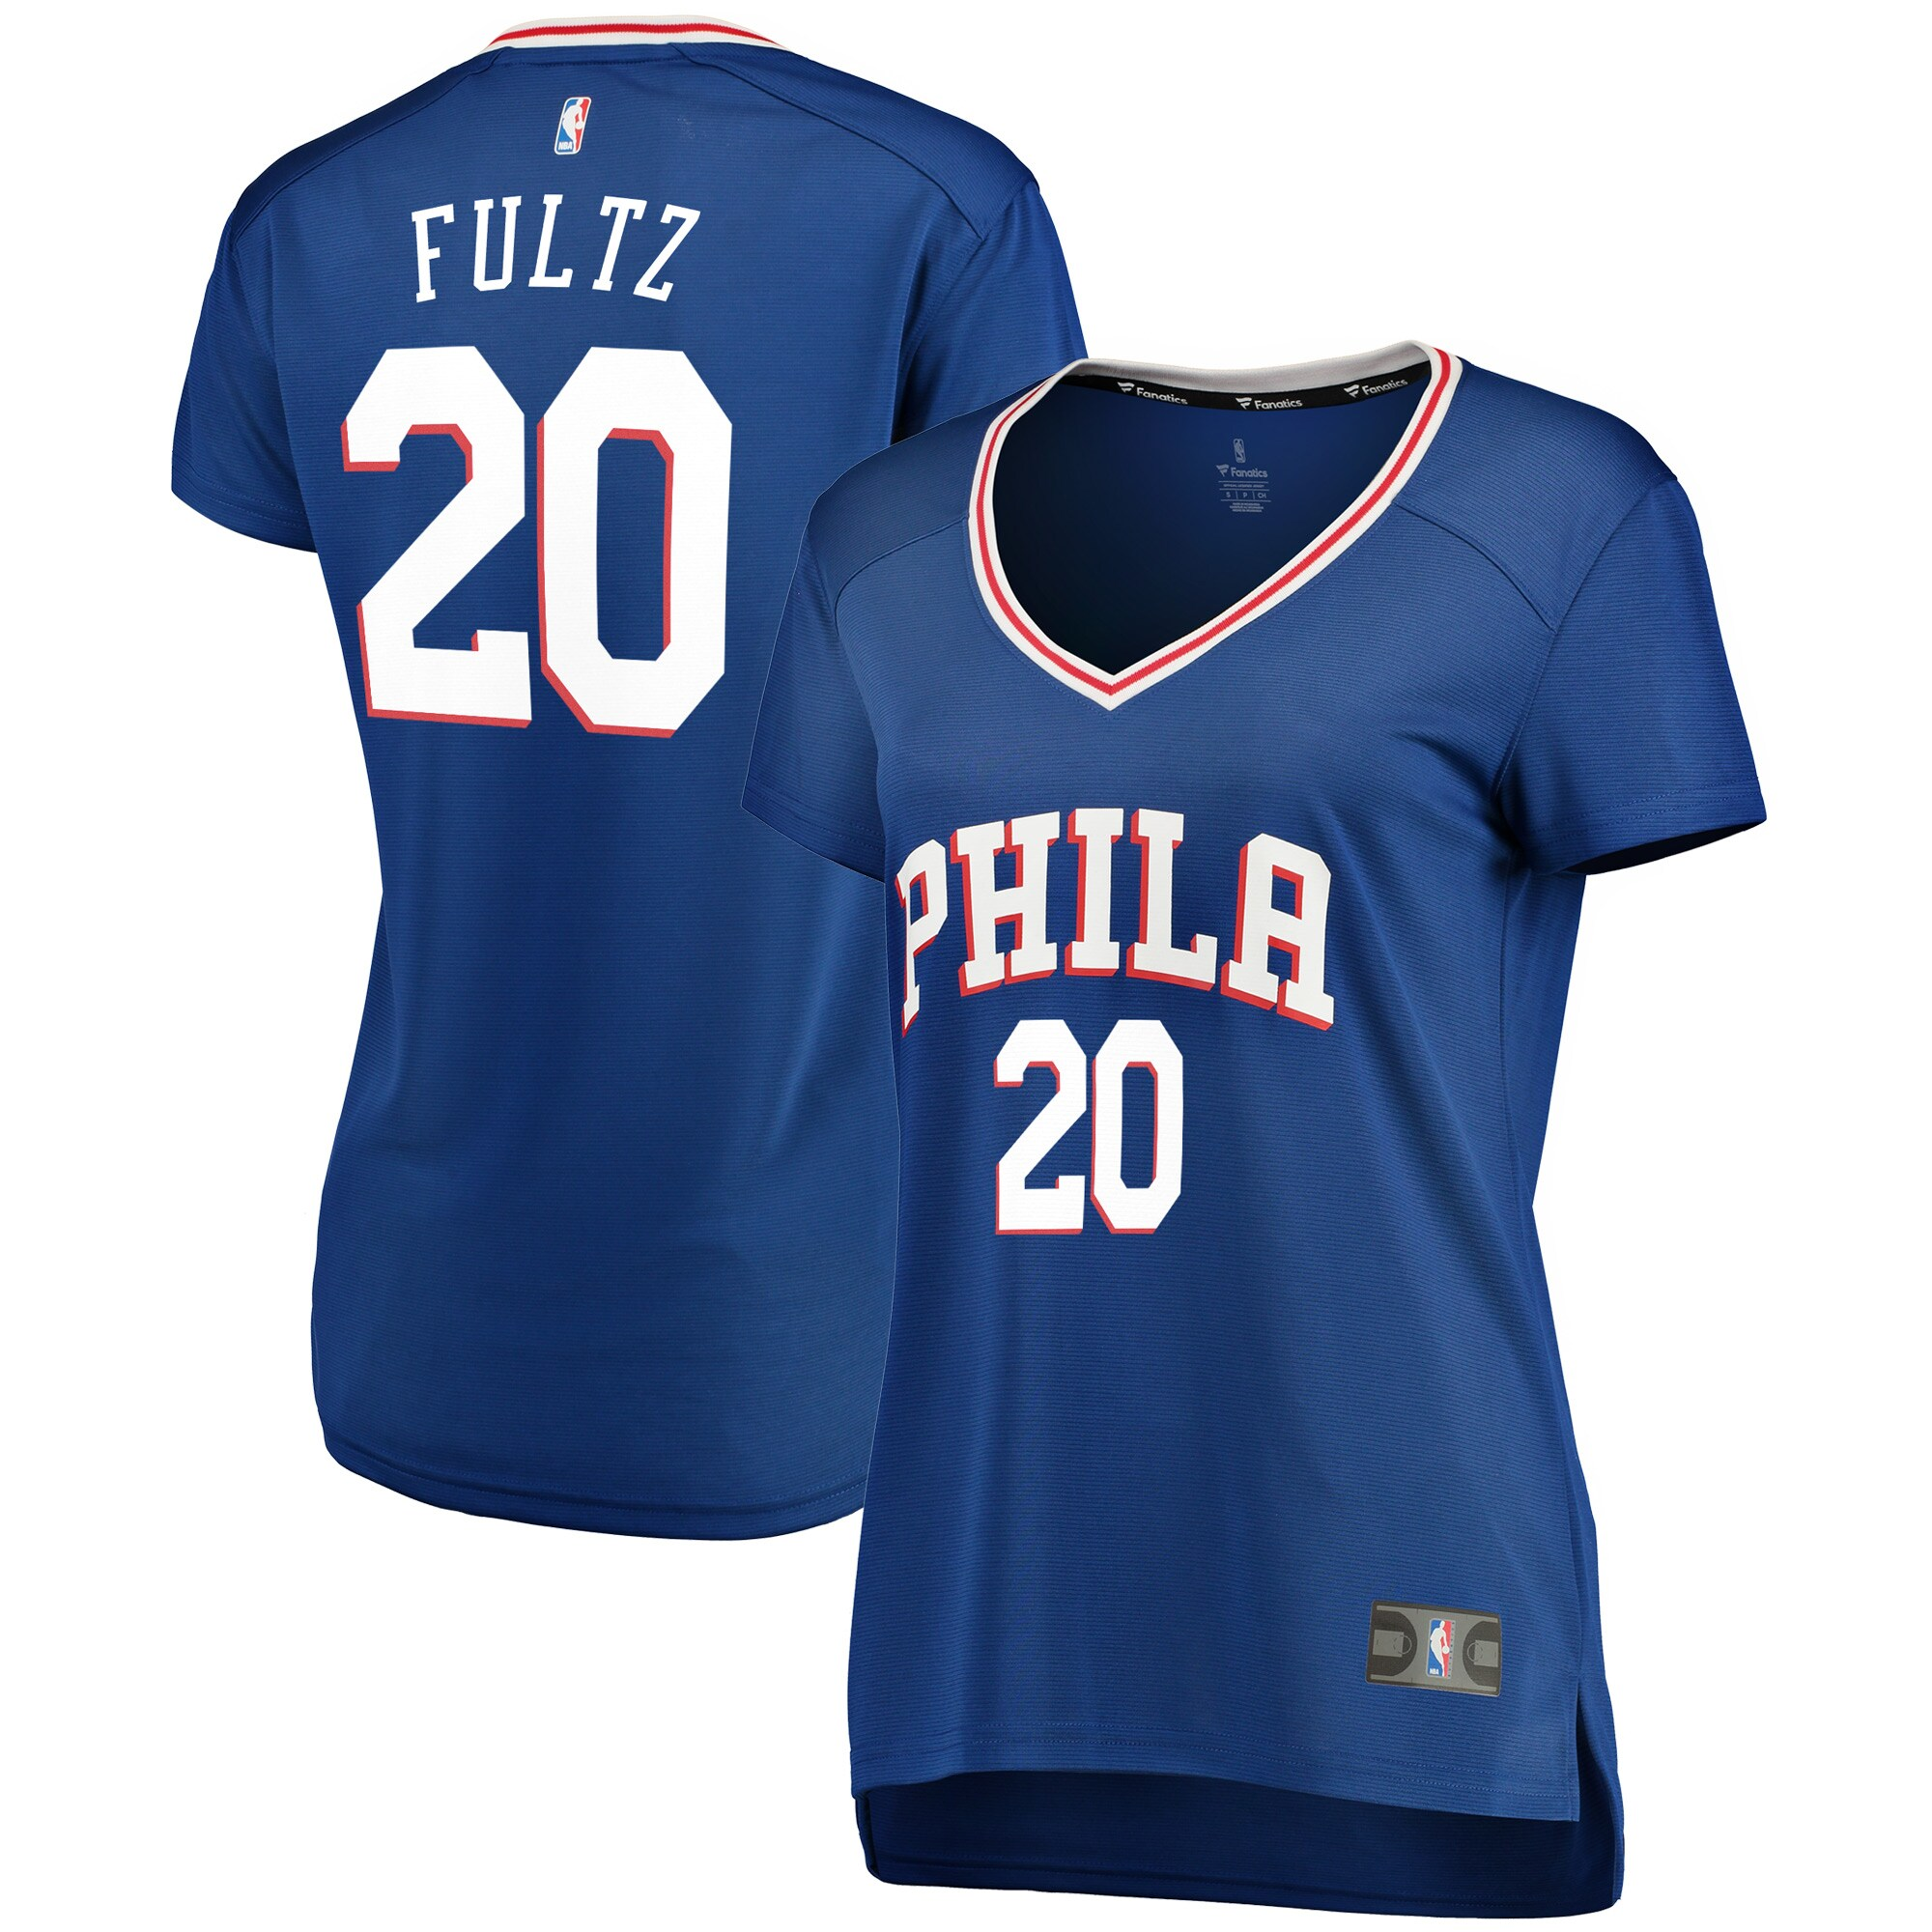 Markelle Fultz Philadelphia 76ers Fanatics Branded Women's Fast Break Replica Jersey Royal - Icon Edition